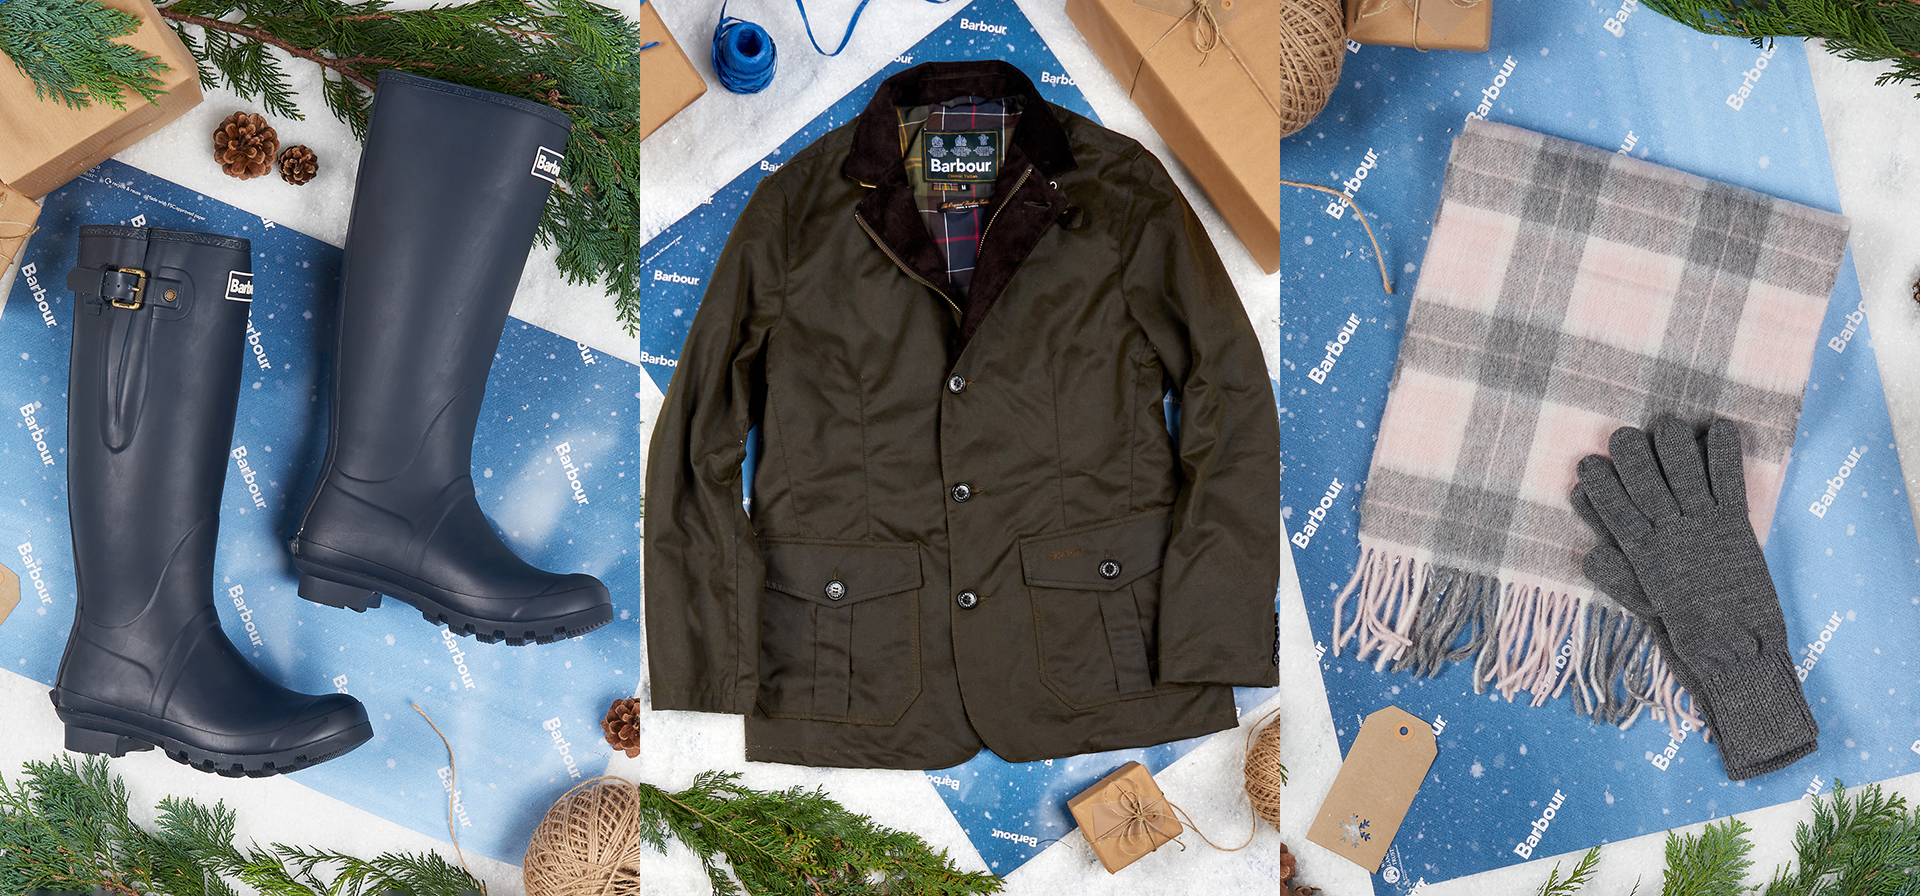 (Barbour) barbour daily gifts competition